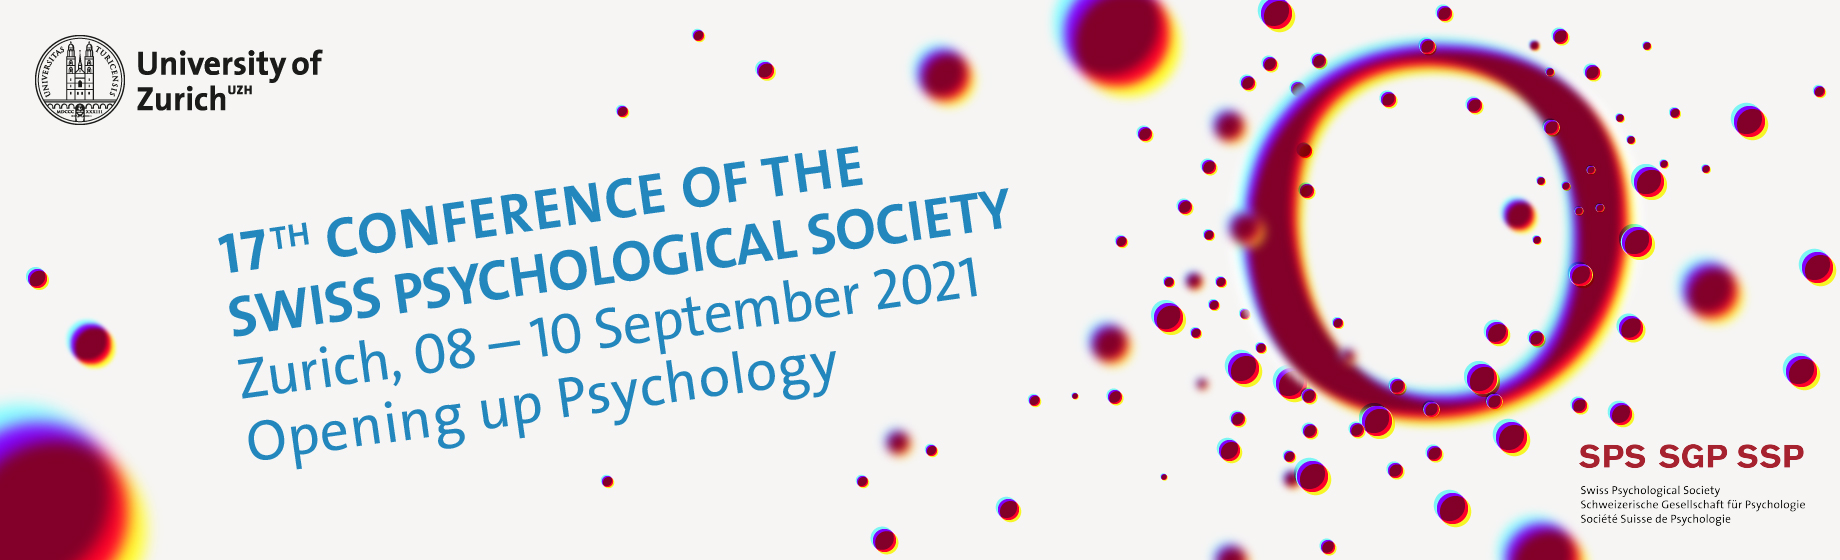 Swiss Psychological Society